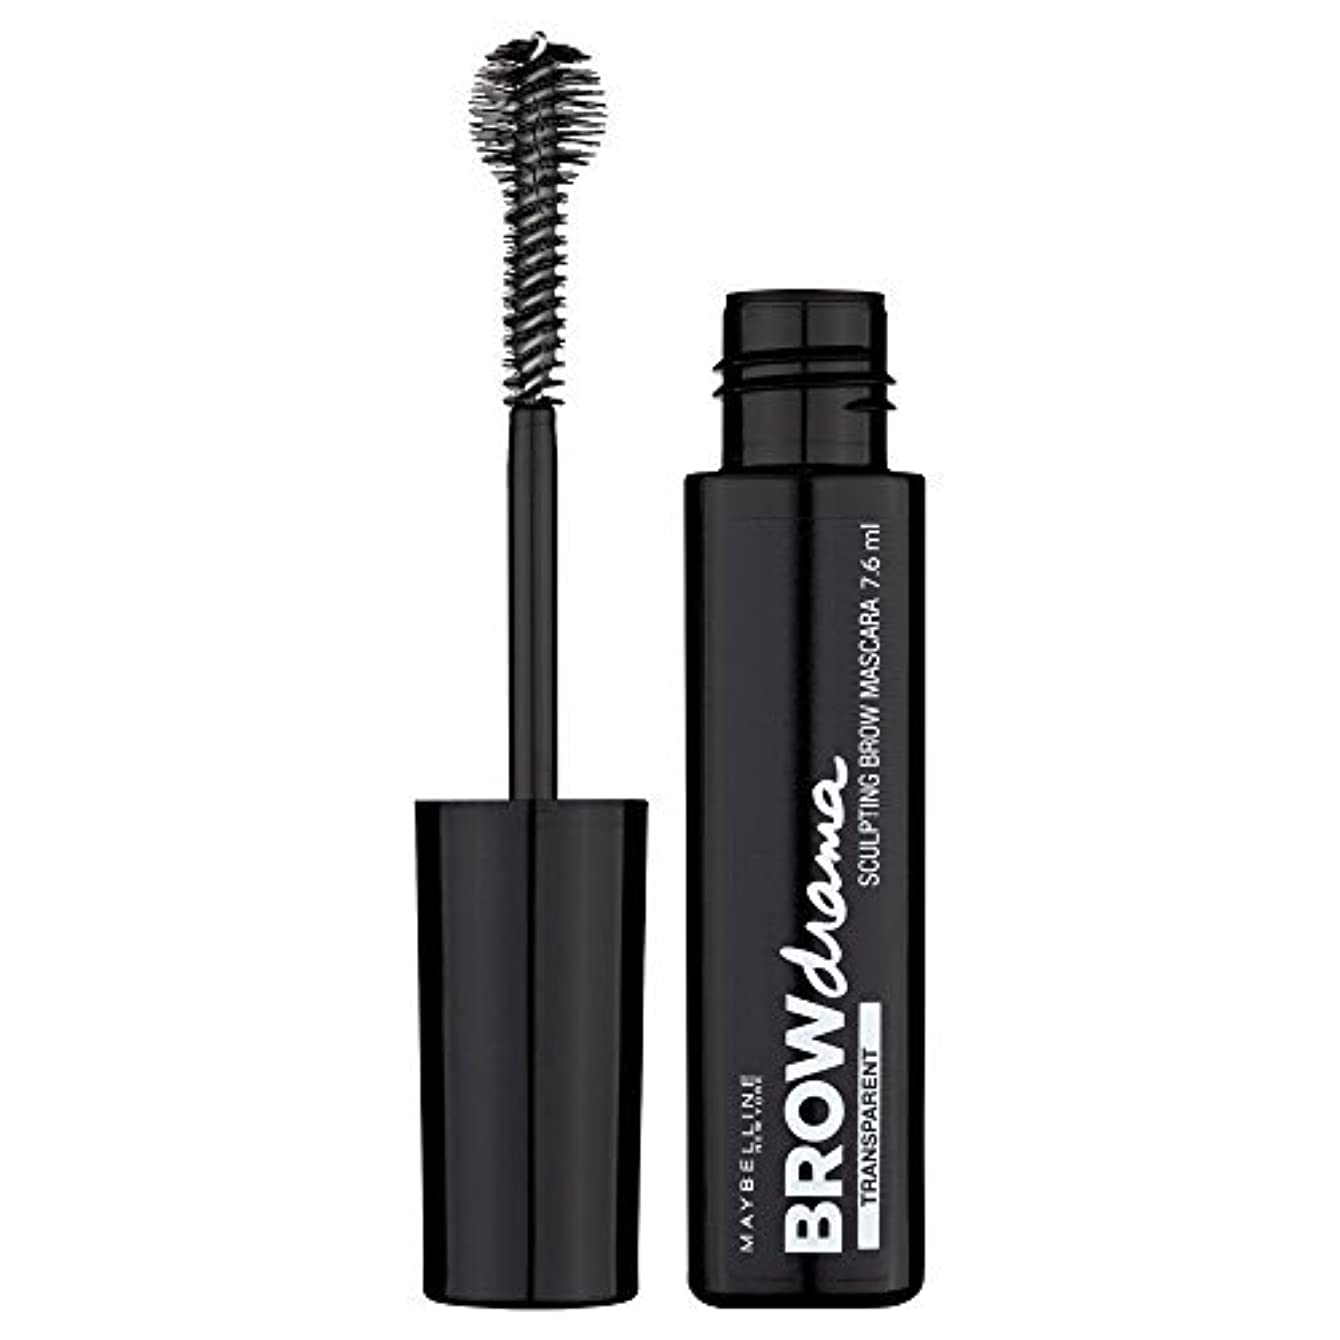 アラート定期的コカインMaybelline Brow Drama Sculpting Brow Mascara Transparent 7.6ml by Maybelline